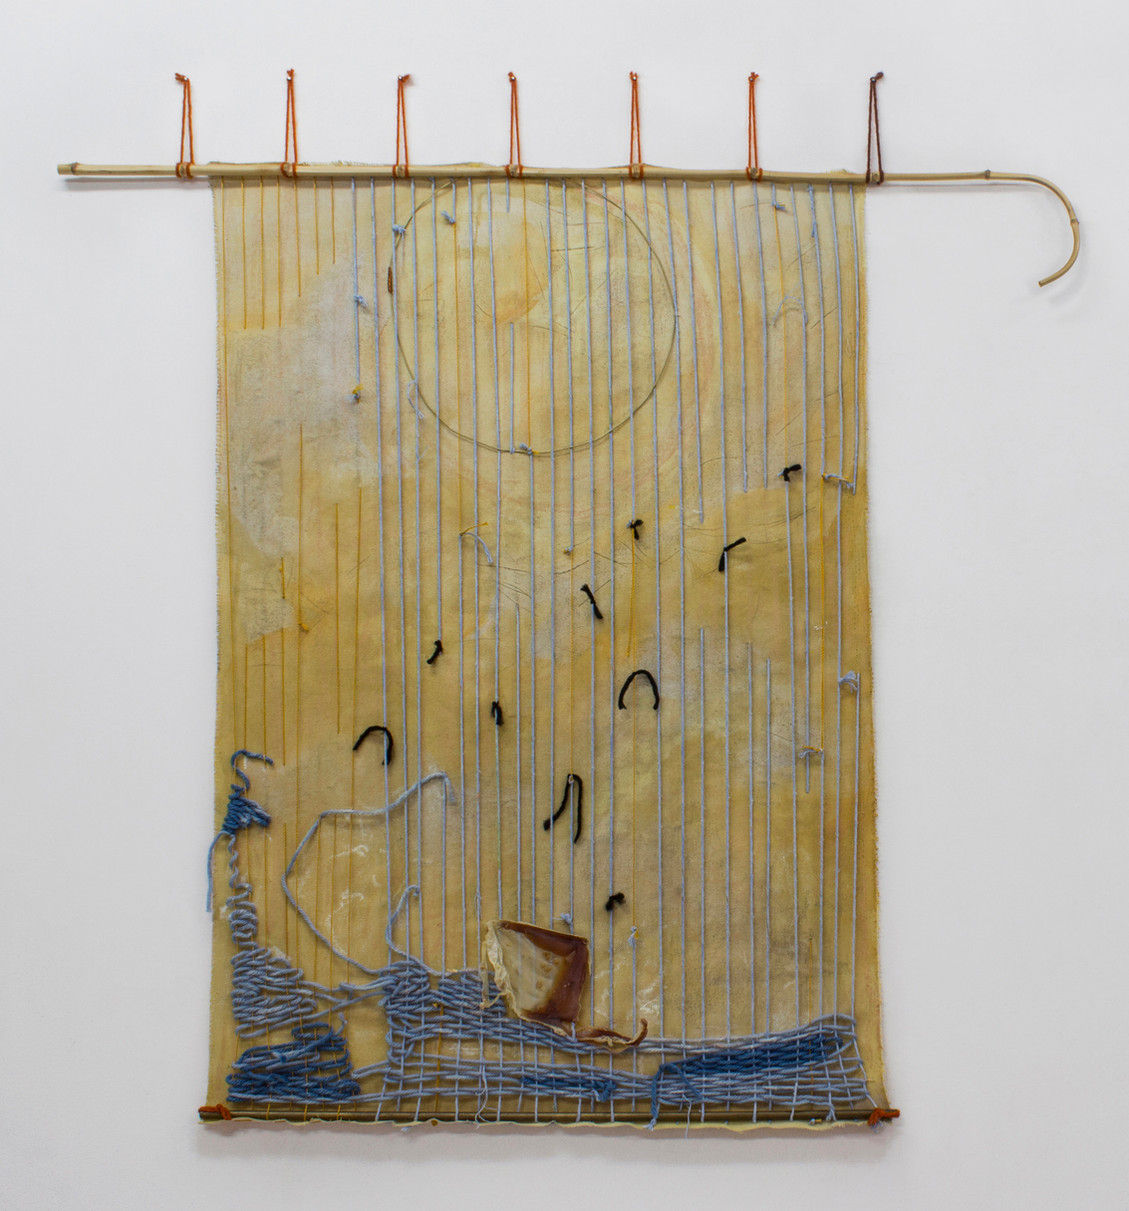 Wreck, Spume and Delirium, 2017 |  Acrylic, pastel, wool, latex, bamboo and brass on cotton | 127 X 111 cm